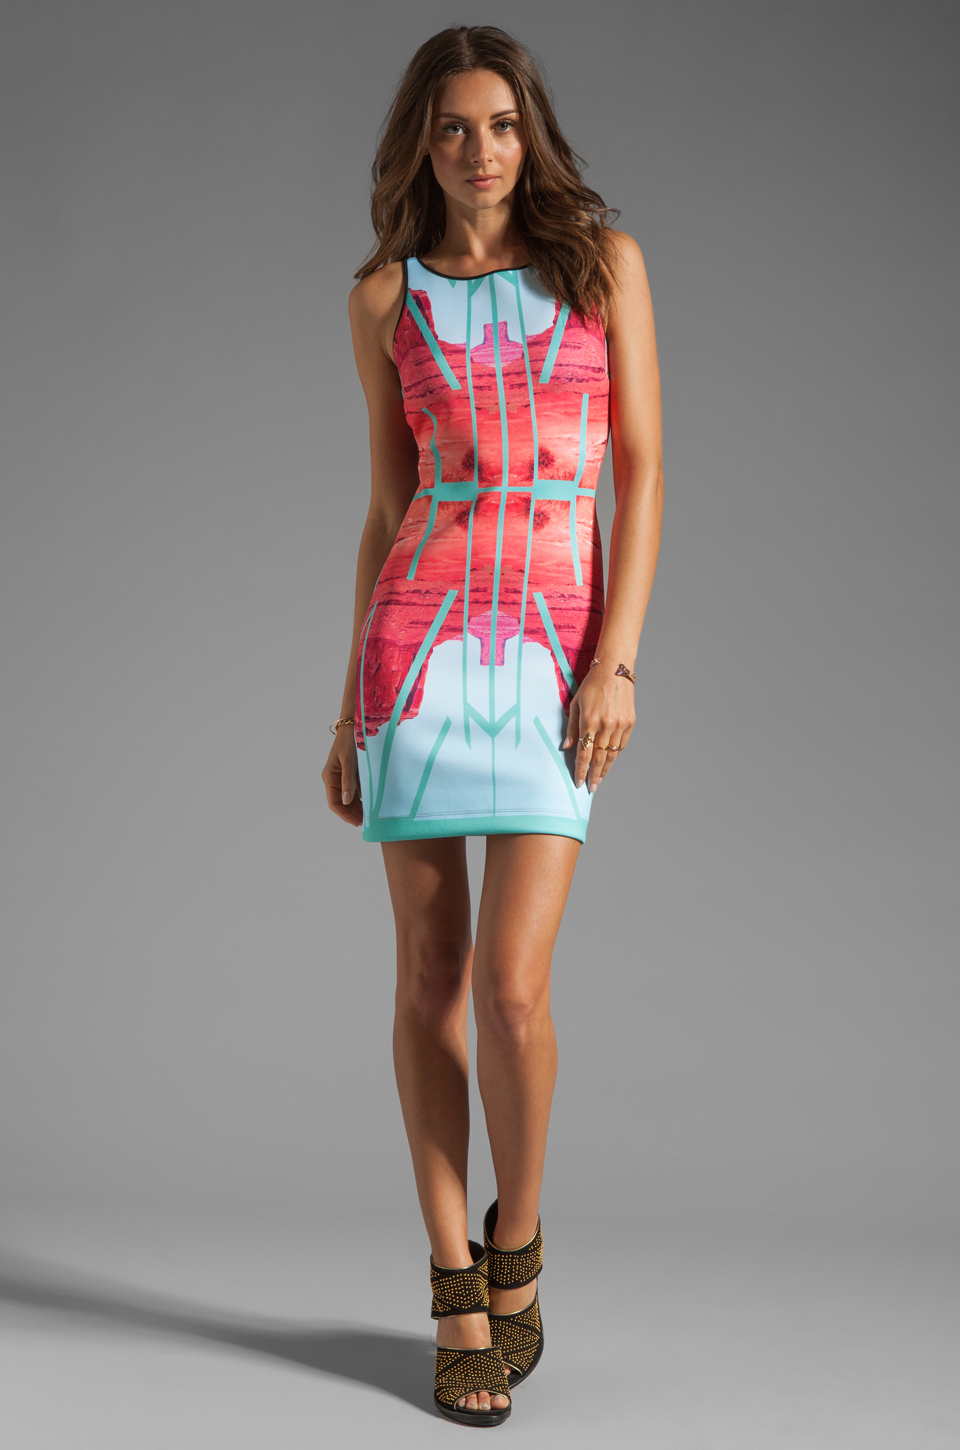 Clover Canyon EXCLUSIVE Lone Rider Neoprene Dress in Multi